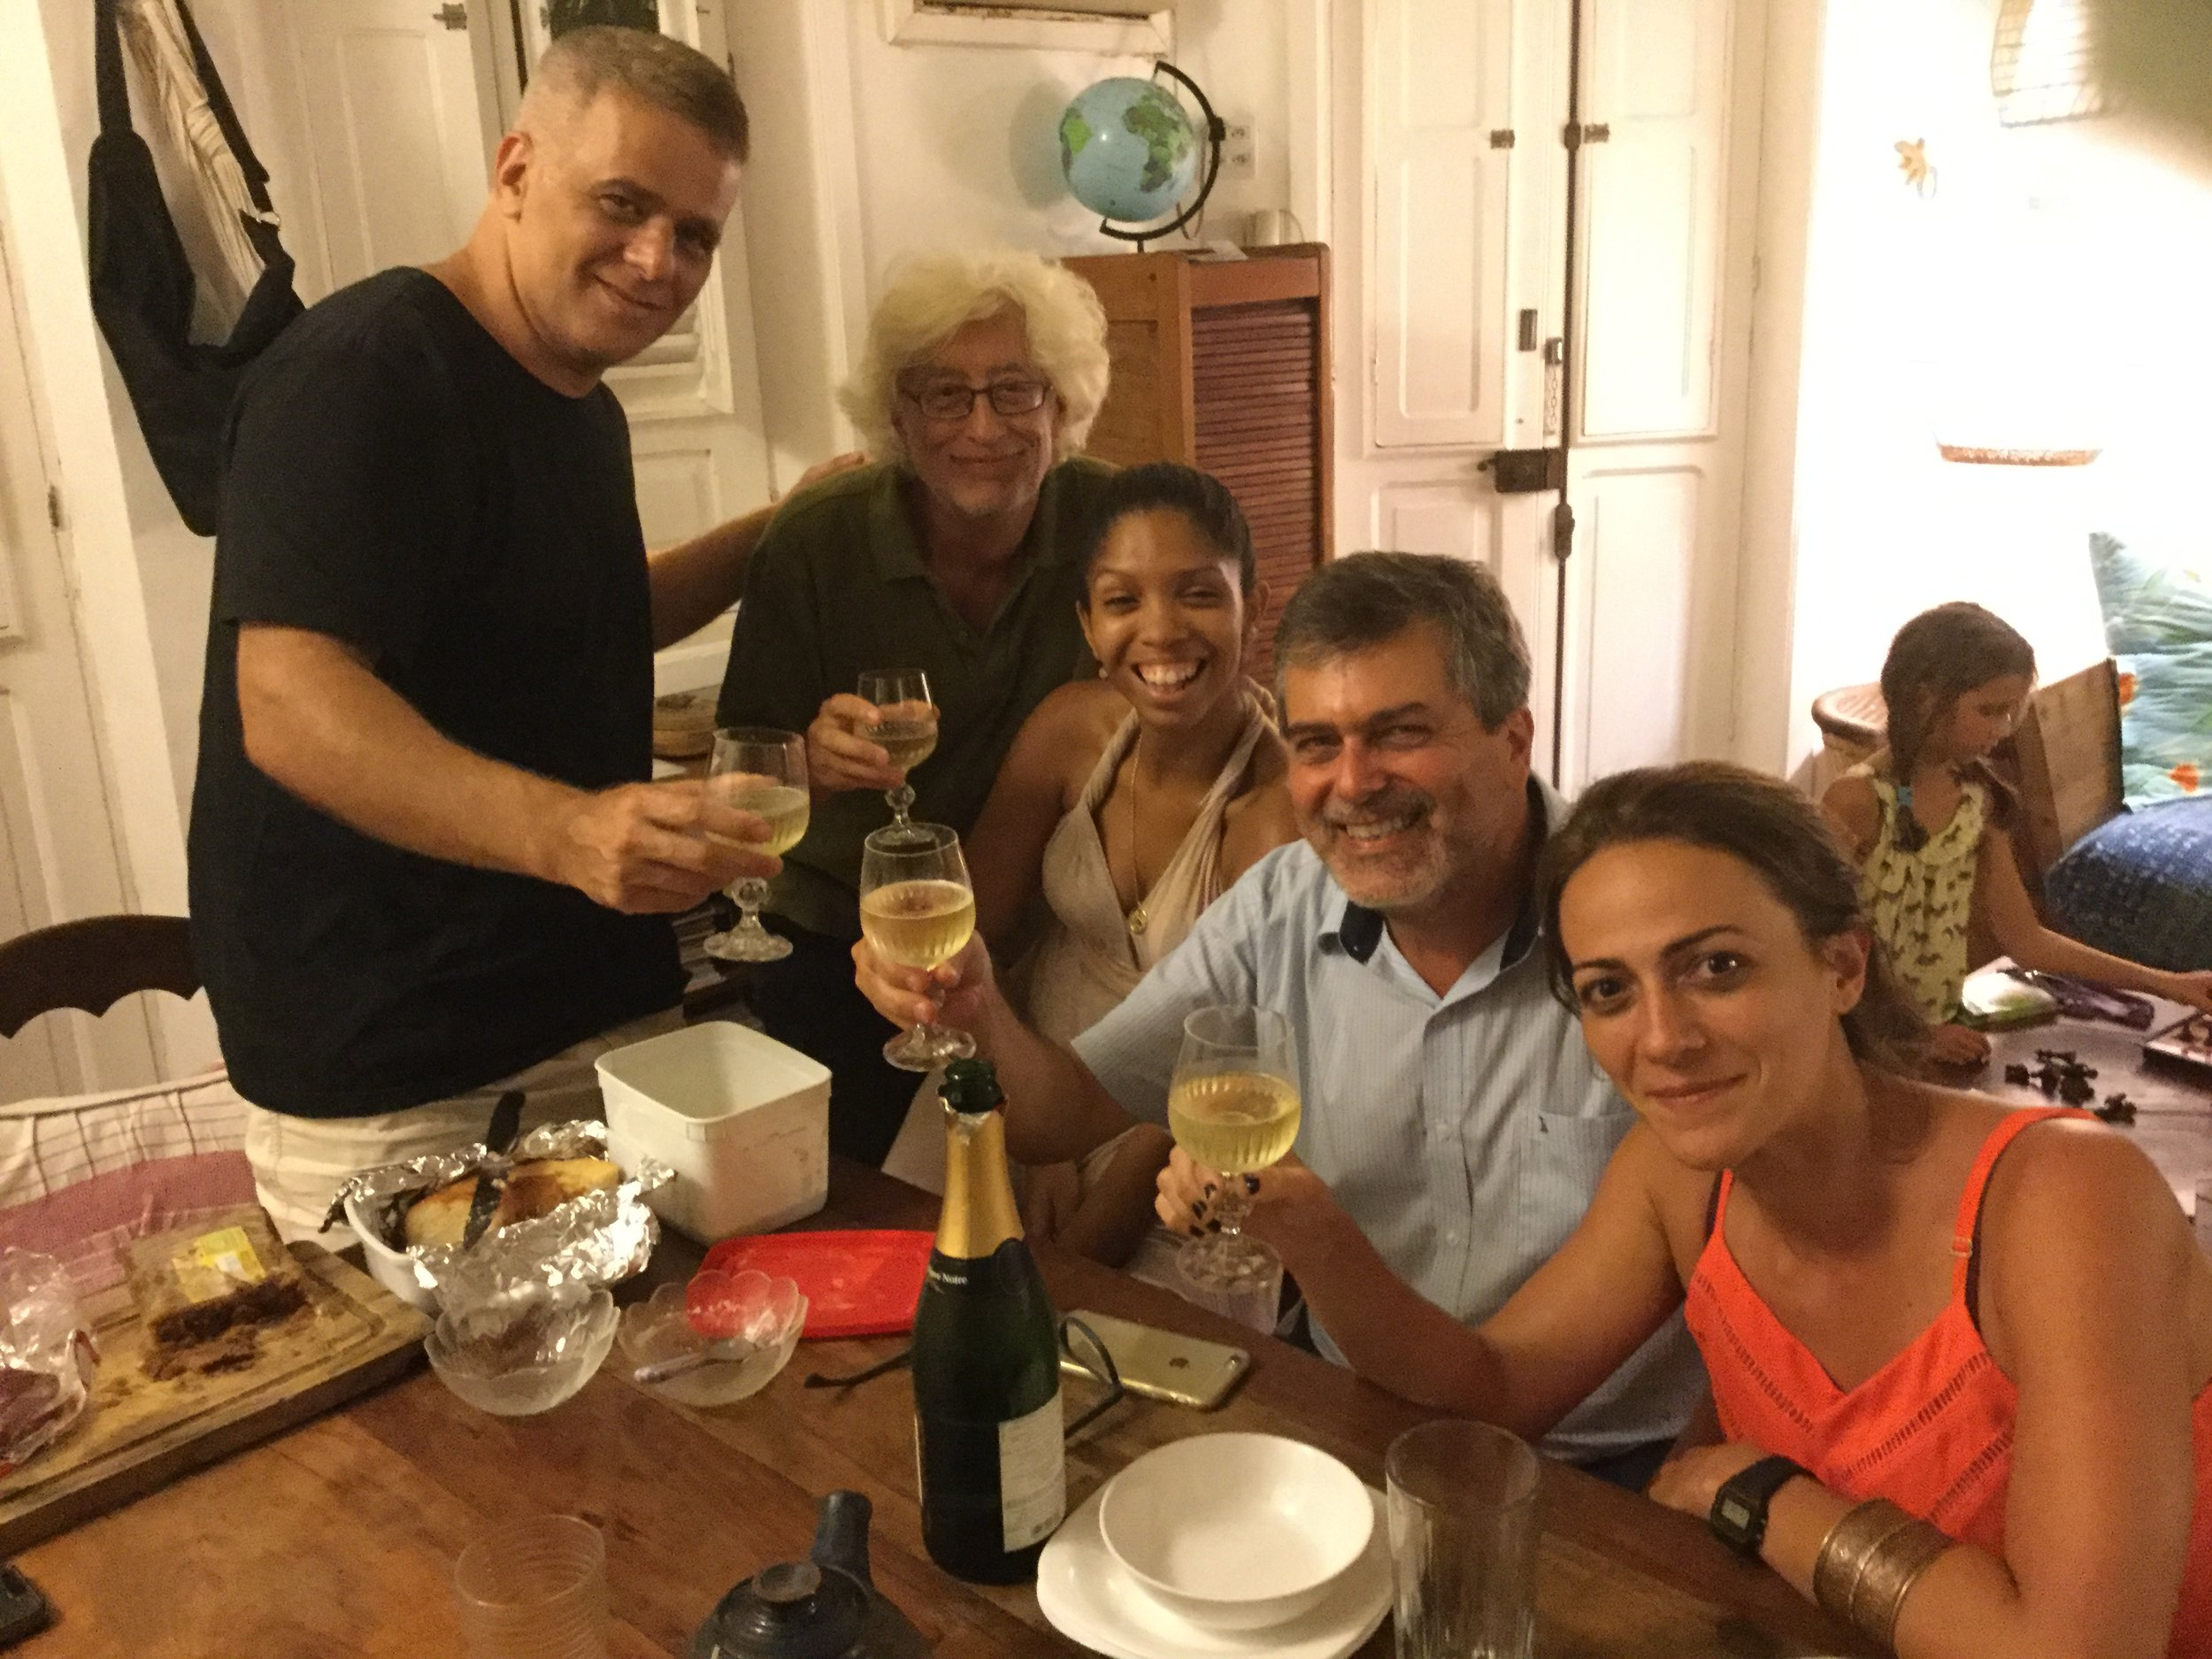 Then Luiz and his partner joined us. They brought desserts - and bubbles! Later in the course of the evening Luiz told us the story of his family...  which I am telling in another post.